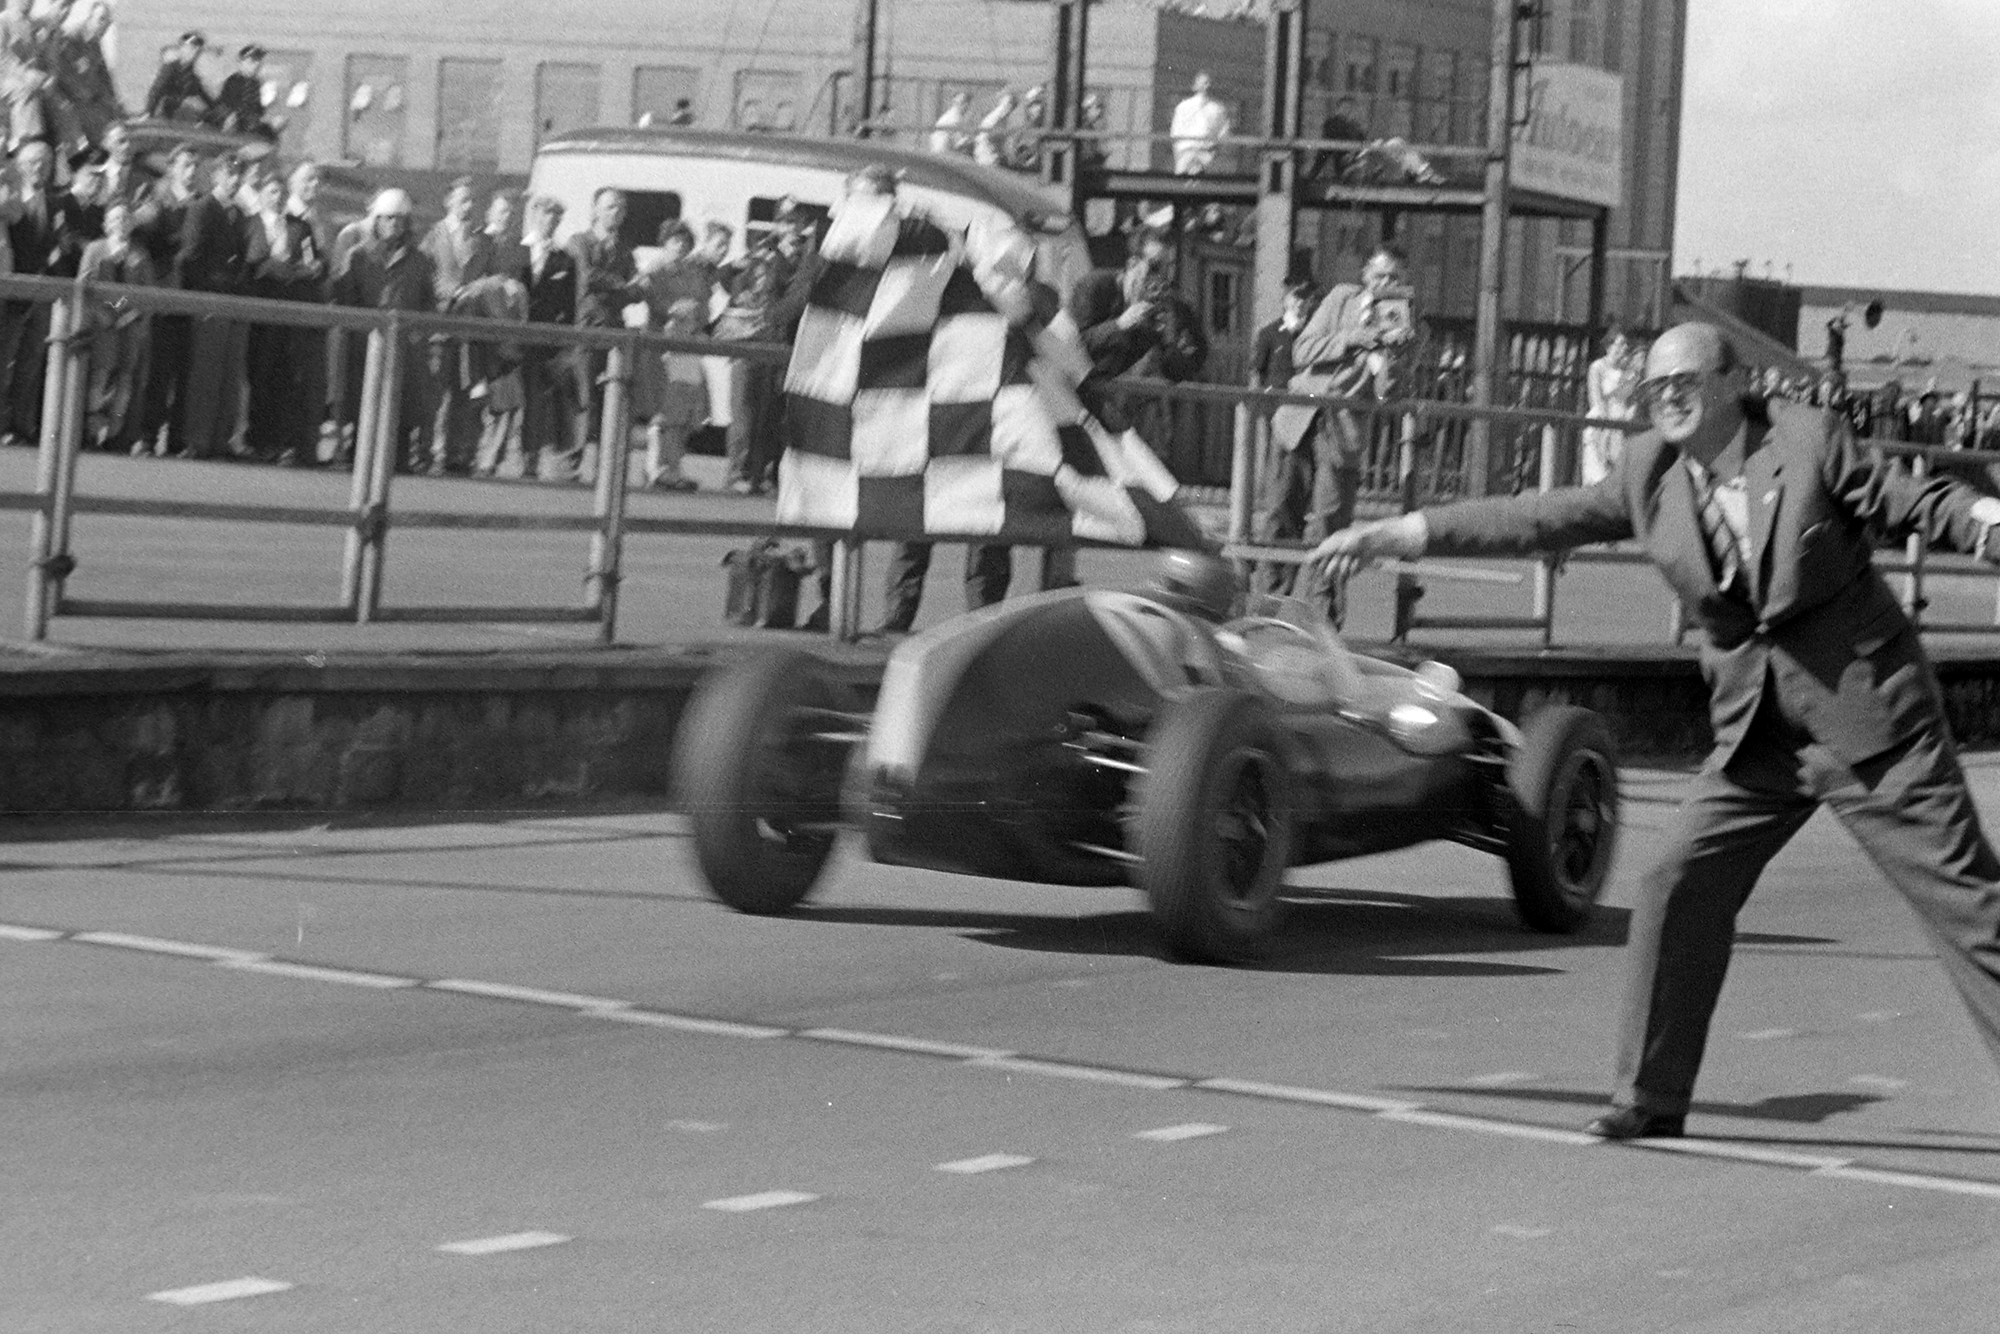 Jack Brabham, Cooper T51 Climax, takes the chequered flag for victory.